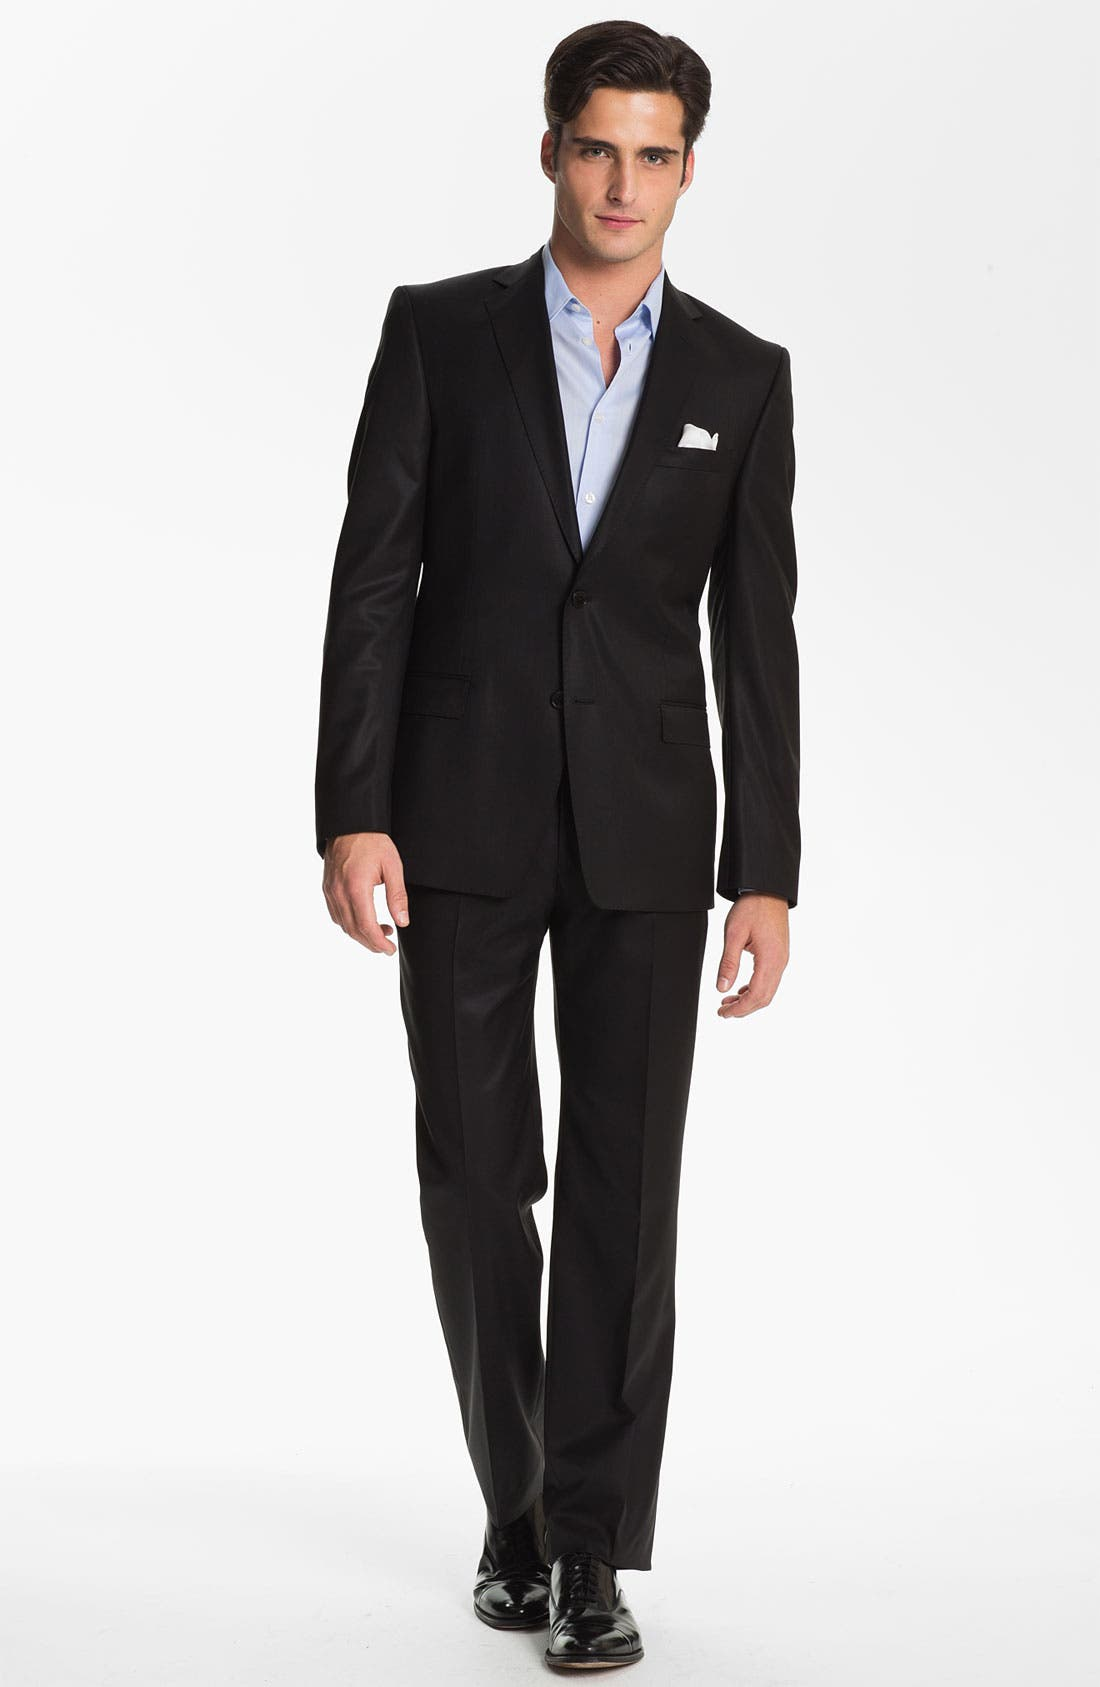 Alternate Image 1 Selected - Versace Trim Fit Wool Suit (Online Only)